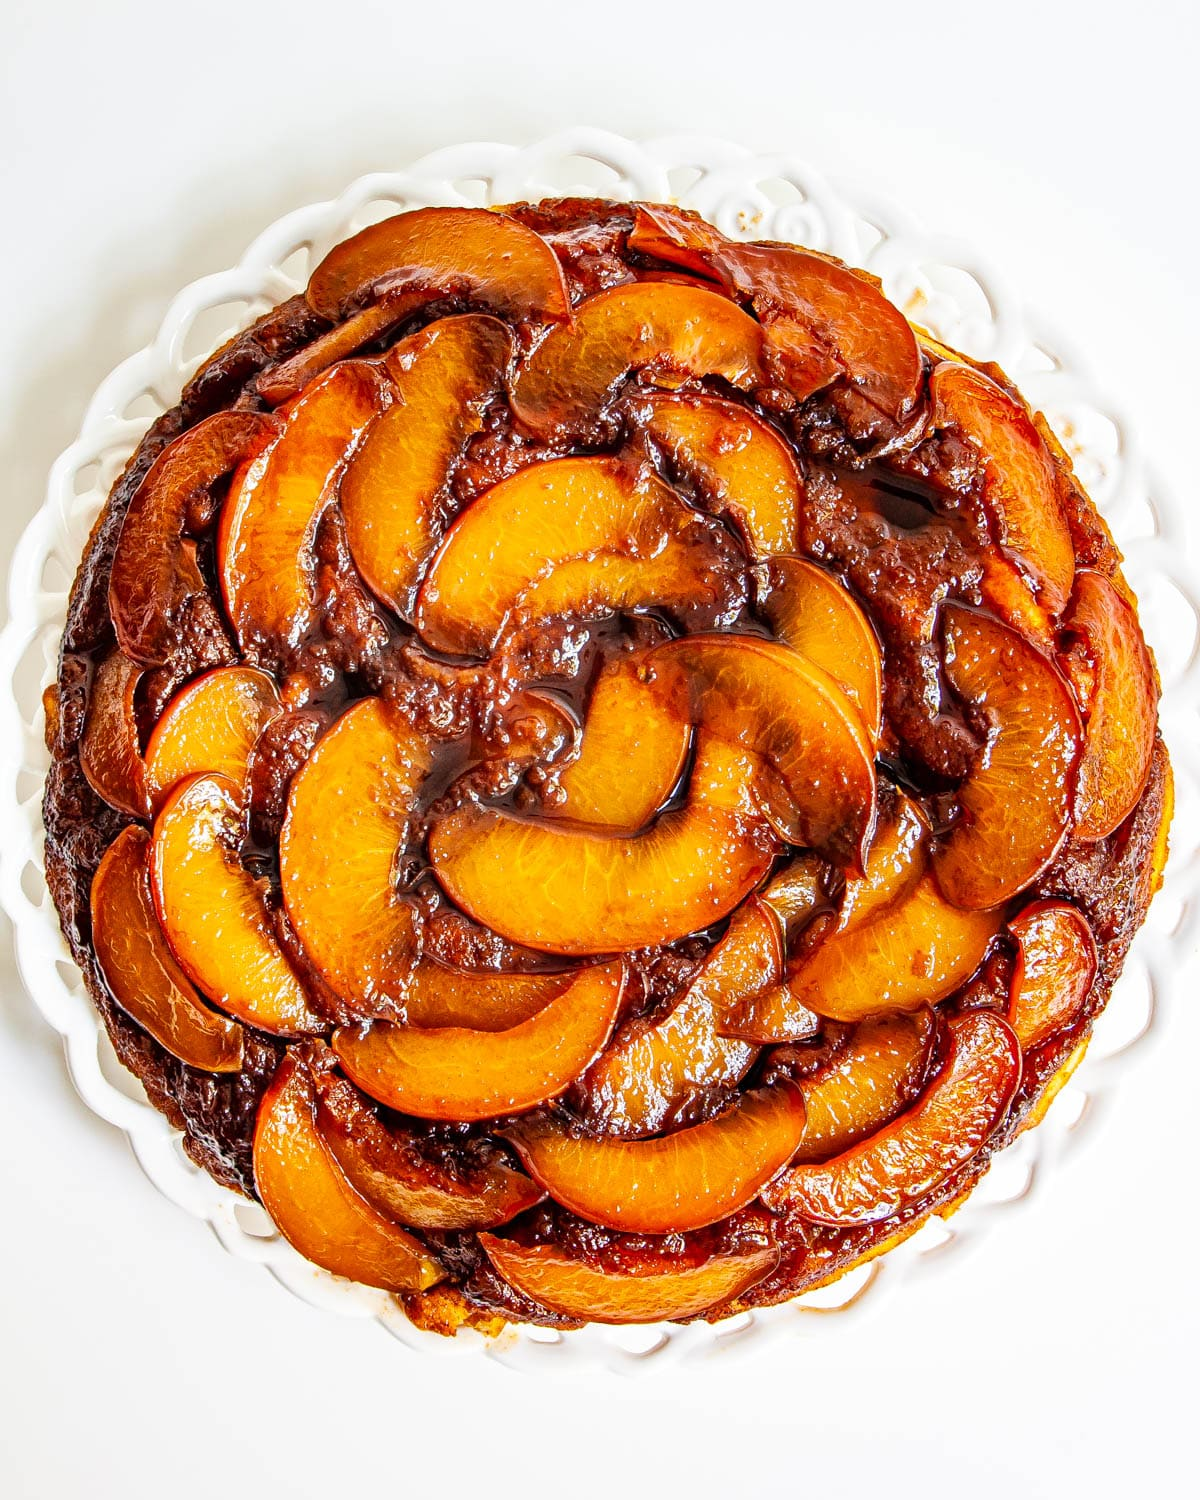 Peach Upside Down Cake on a white plate